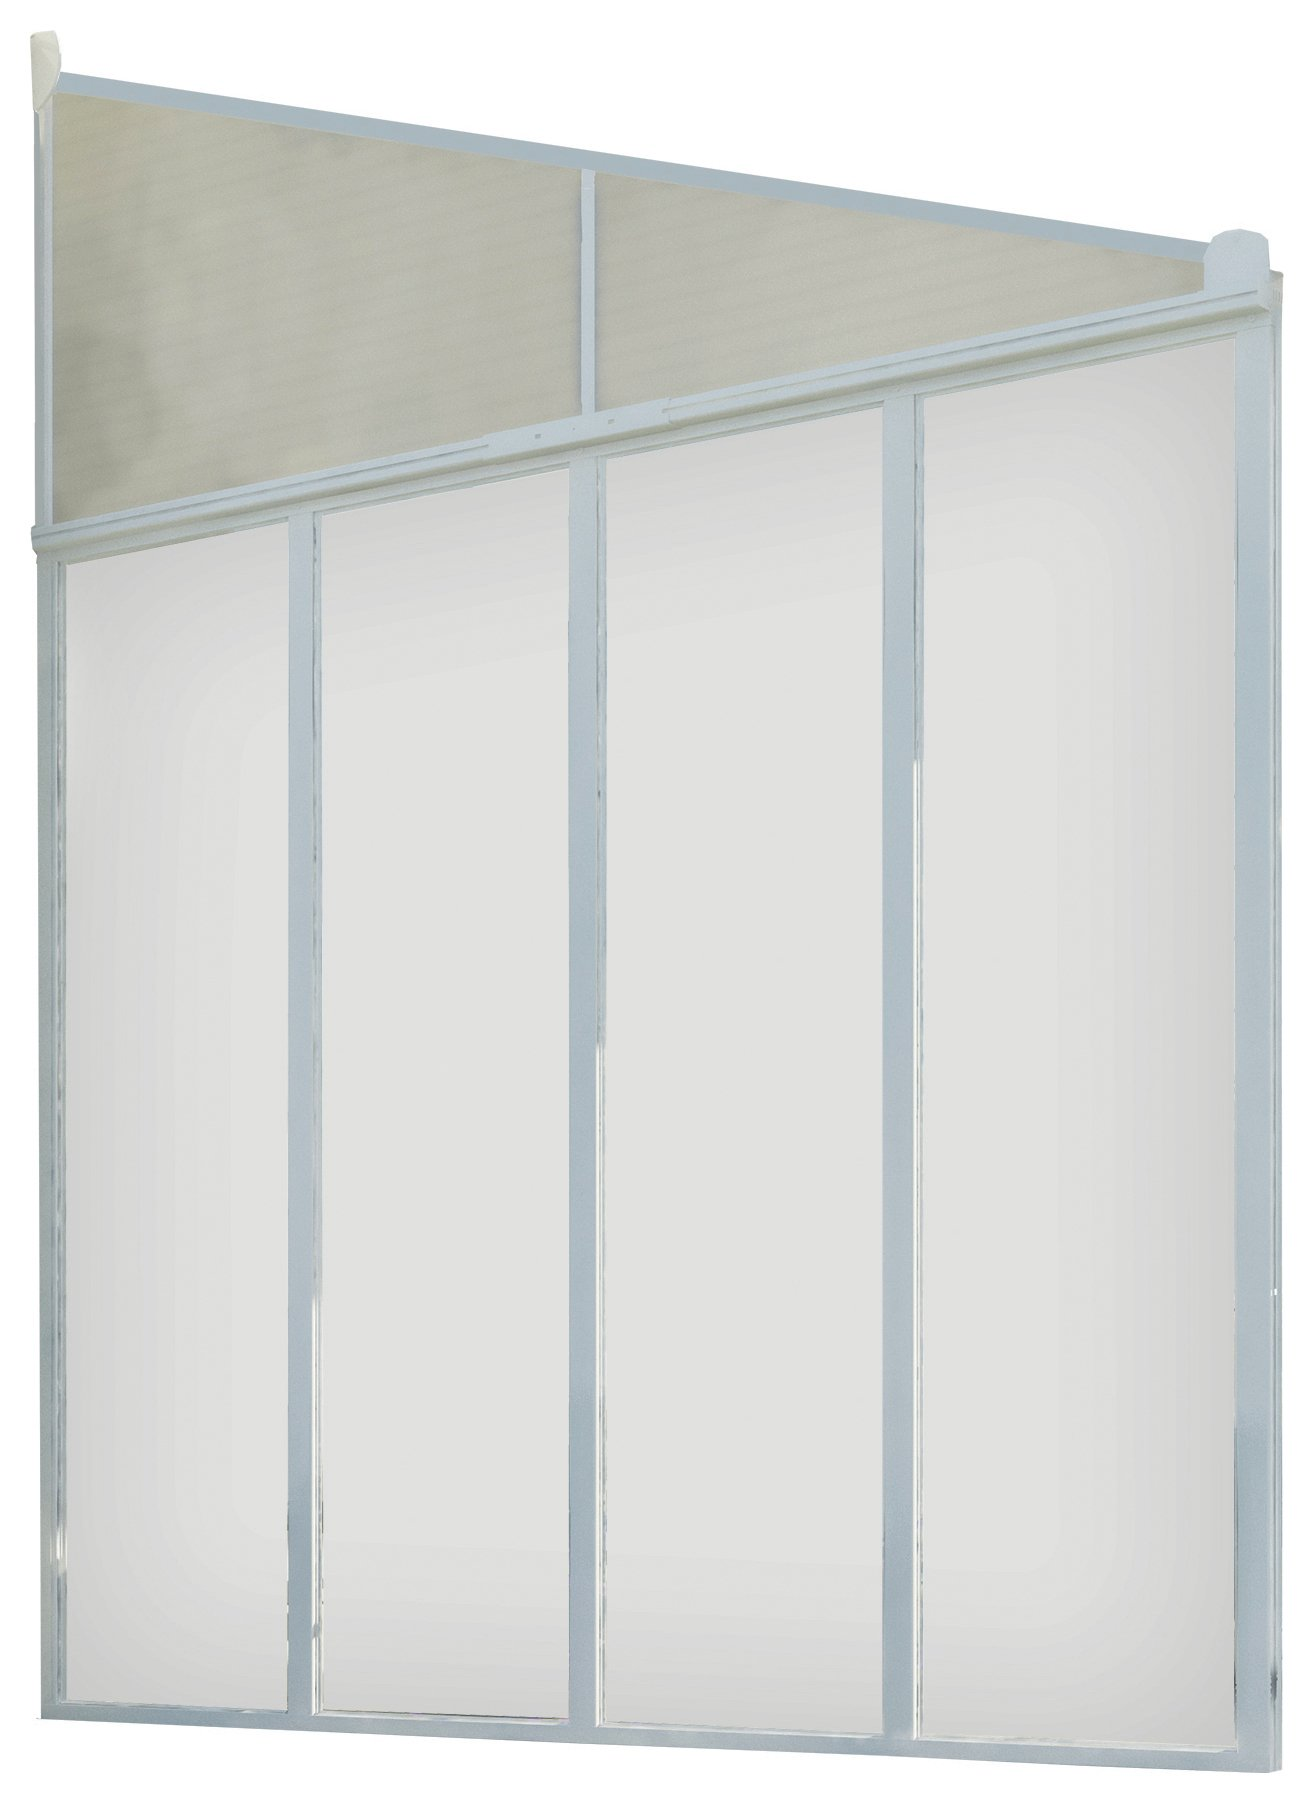 Palram Feria Patio Cover Side Wall - 3 Metre Depth. lowest price